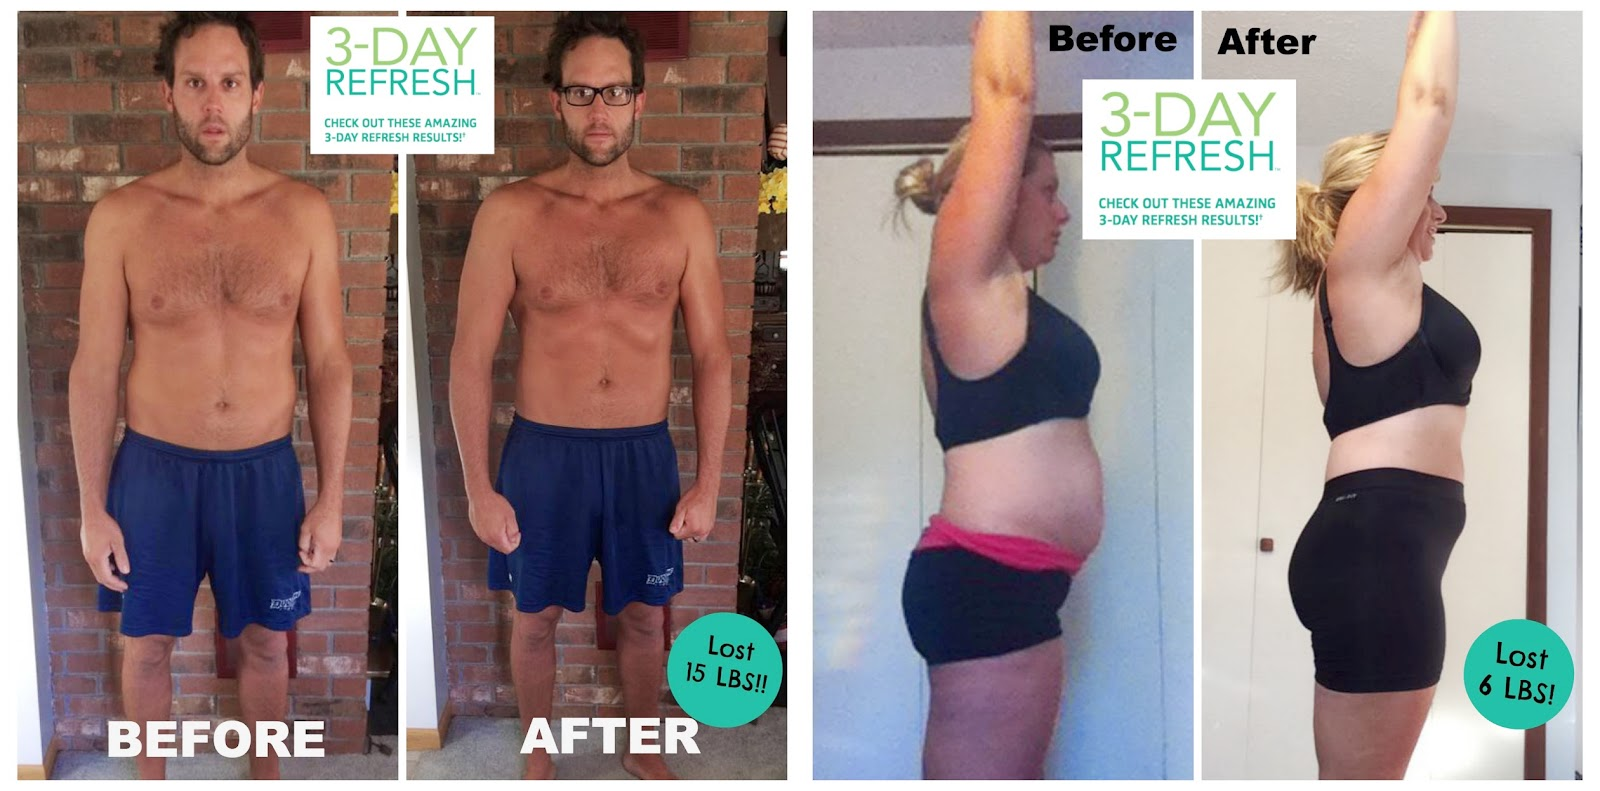 3 Day Refresh, Couples Results for the 3 day refresh, 3 Day Refresh men's results, 3 day day Refresh womens results, lose 15 pounds in 3 days, meal idea, Results, challenge group, support, Sara Stakeley, Sarastakeley.com,